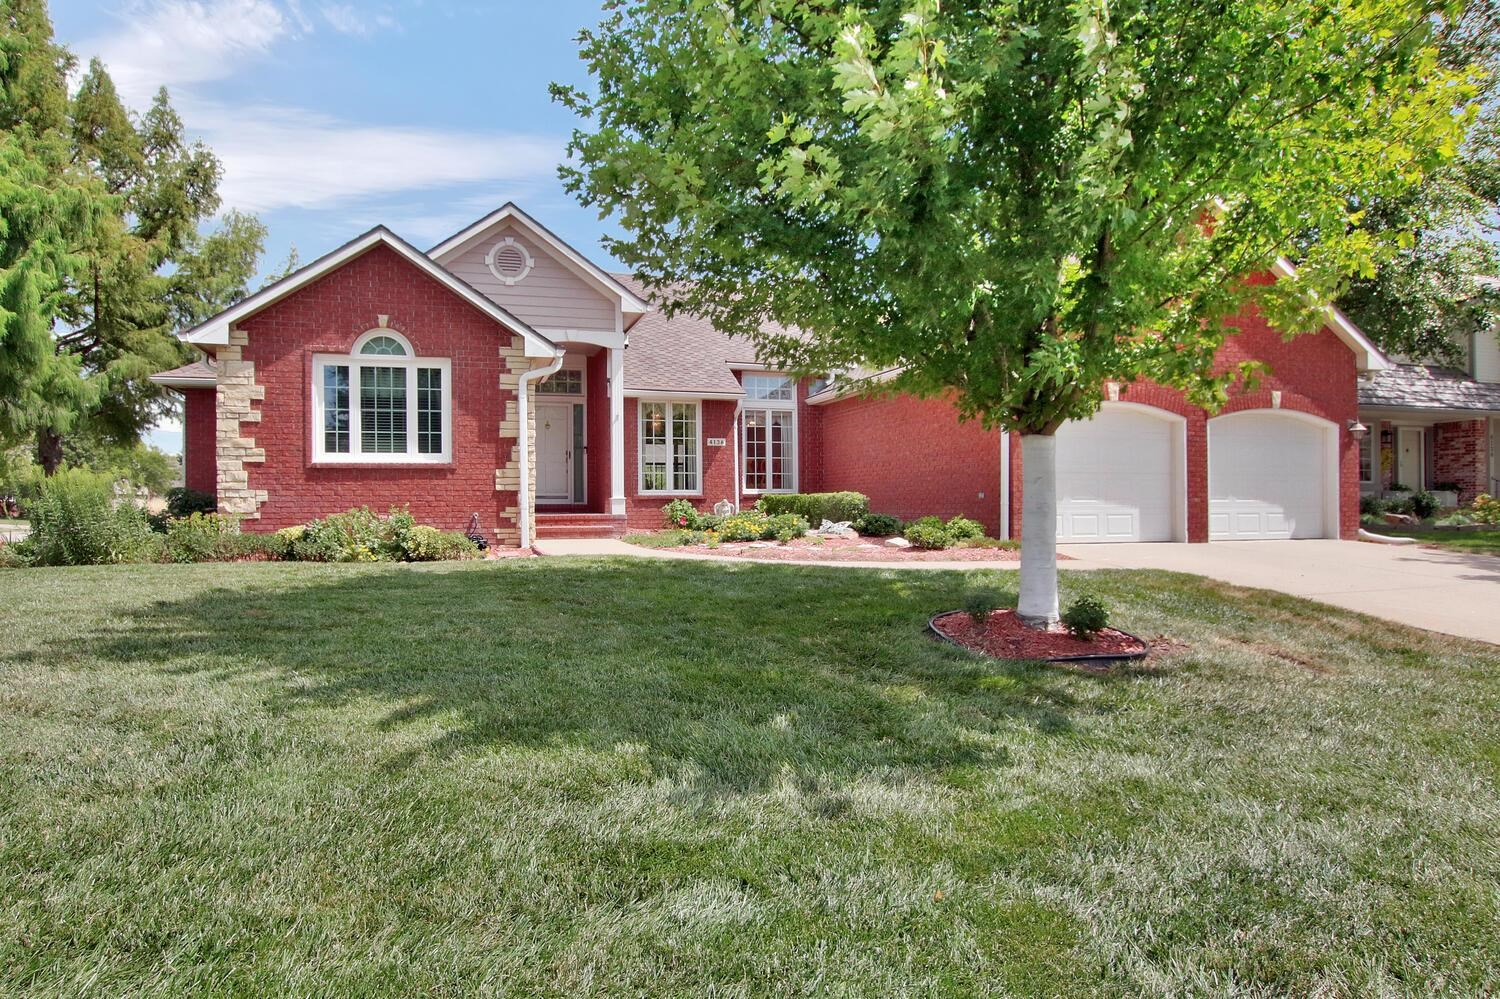 NEW PRICE!  Light and bright with an open floorplan that's perfect for entertaining all in the Willo